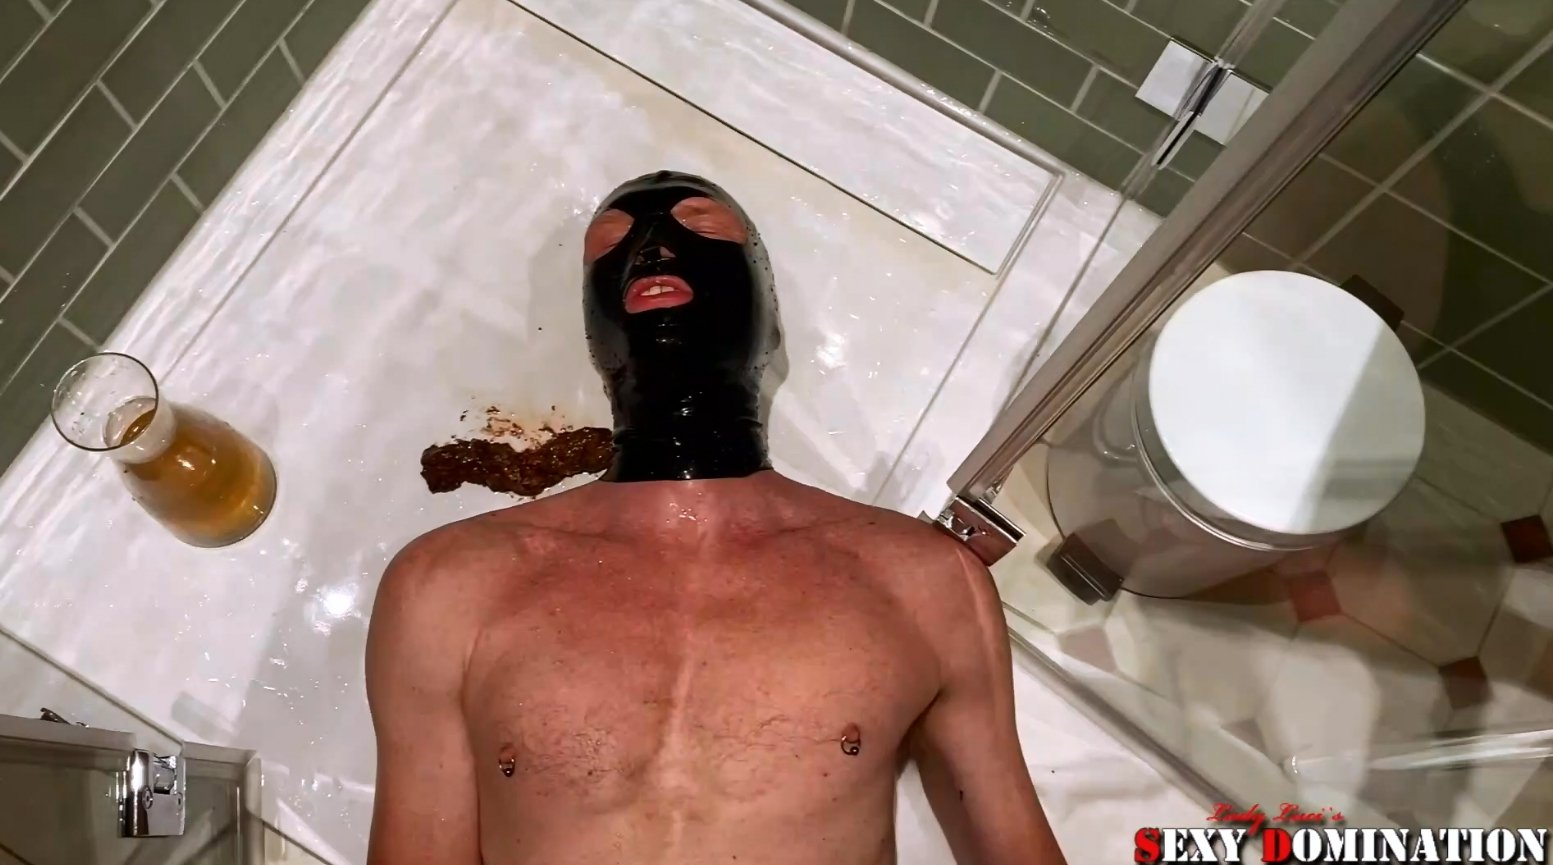 May 11 2021 – The insatiable scat slave (Premium user request by Bert) with Lady Luci 25,99 €